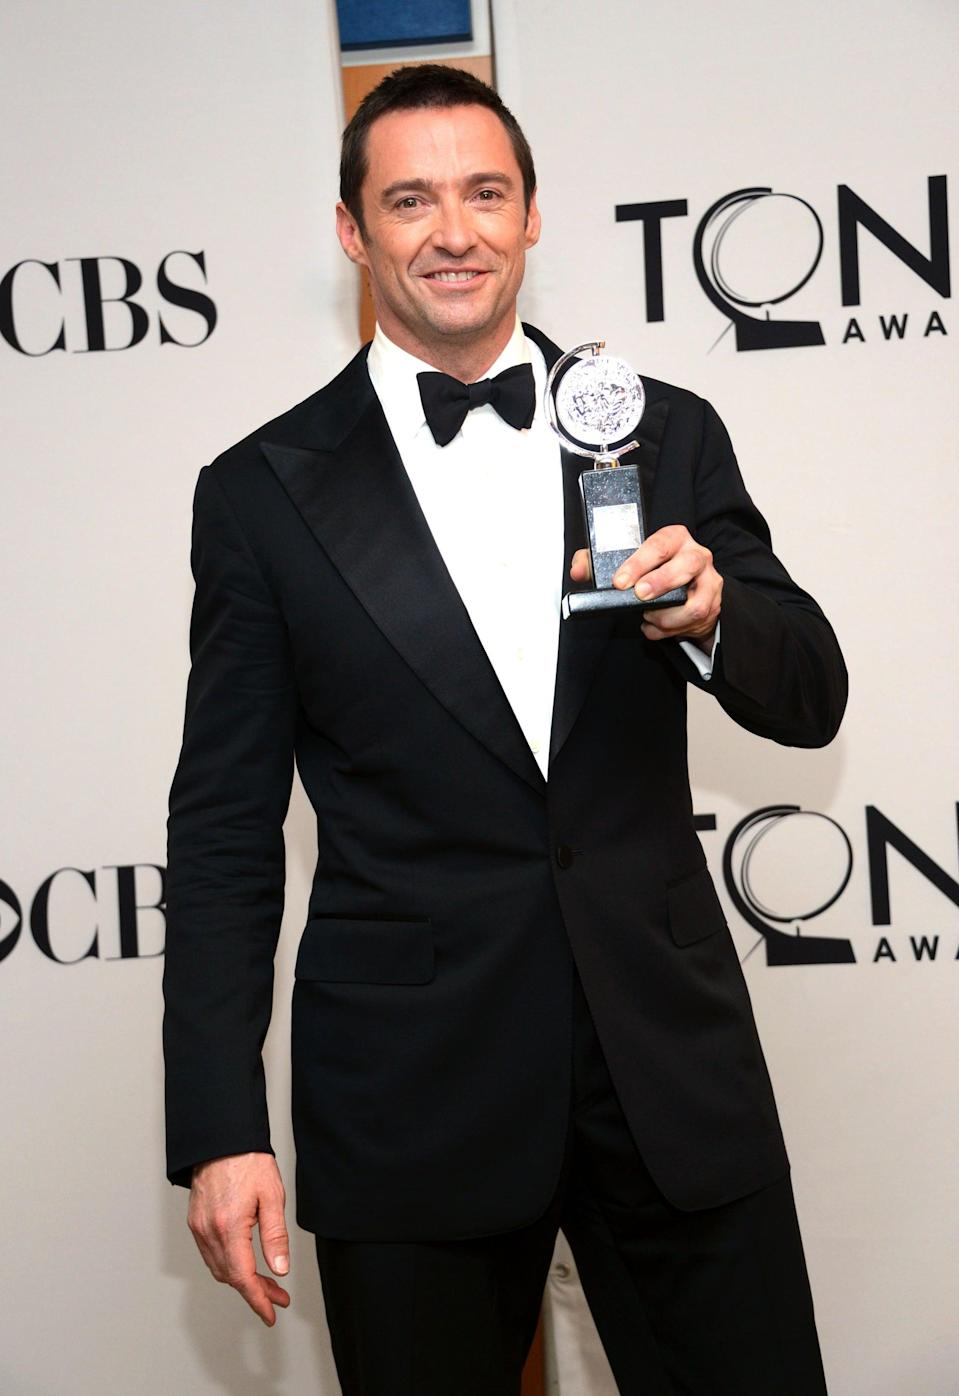 <ul> <li><strong>Has:</strong> An Emmy for his performance at the 2004 Tony Awards, a Grammy for producing <strong>The Greatest Showman </strong>soundtrack, and two Tonys: one for <strong>The Boy From Oz</strong> and one special award for Extraordinary Contribution to the Theatre Community in 2012</li> <li><strong>Needs:</strong> An Oscar</li> </ul>